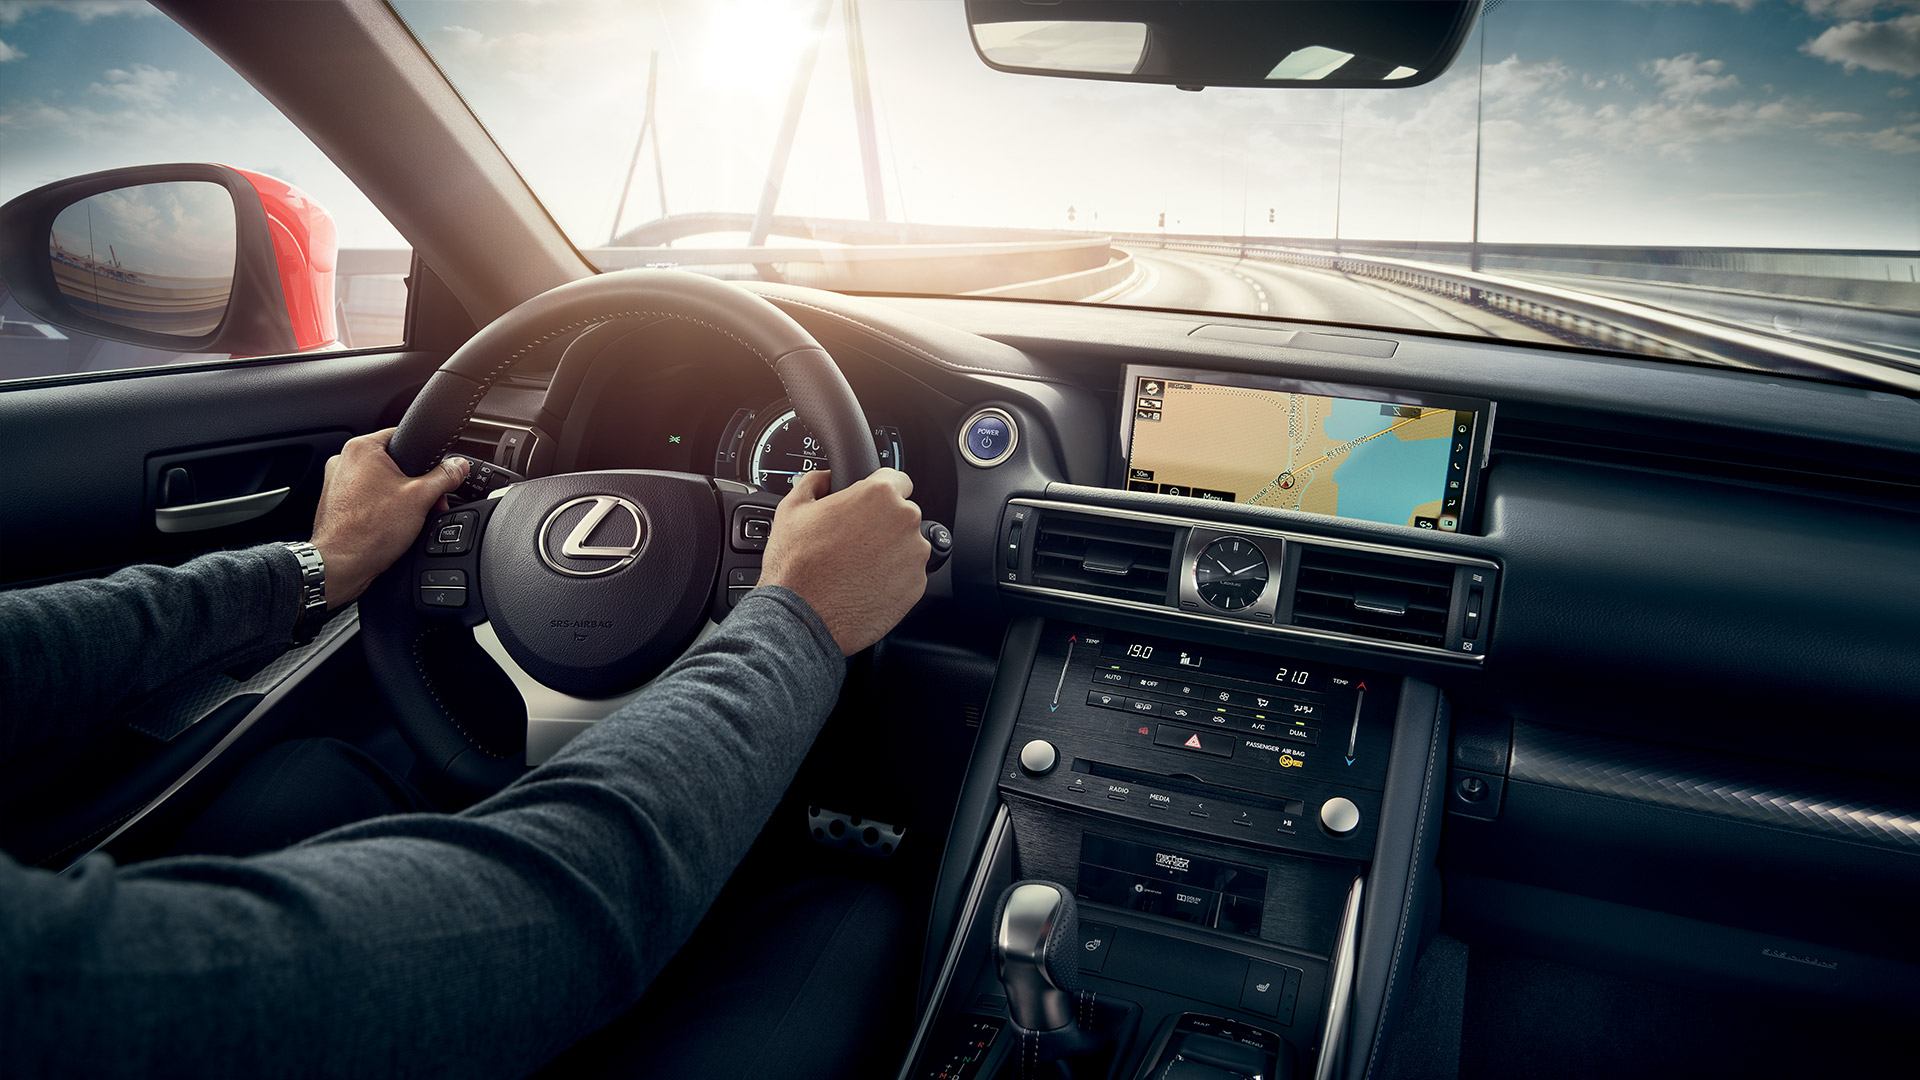 2019 lexus is 300h next steps behind wheel 001